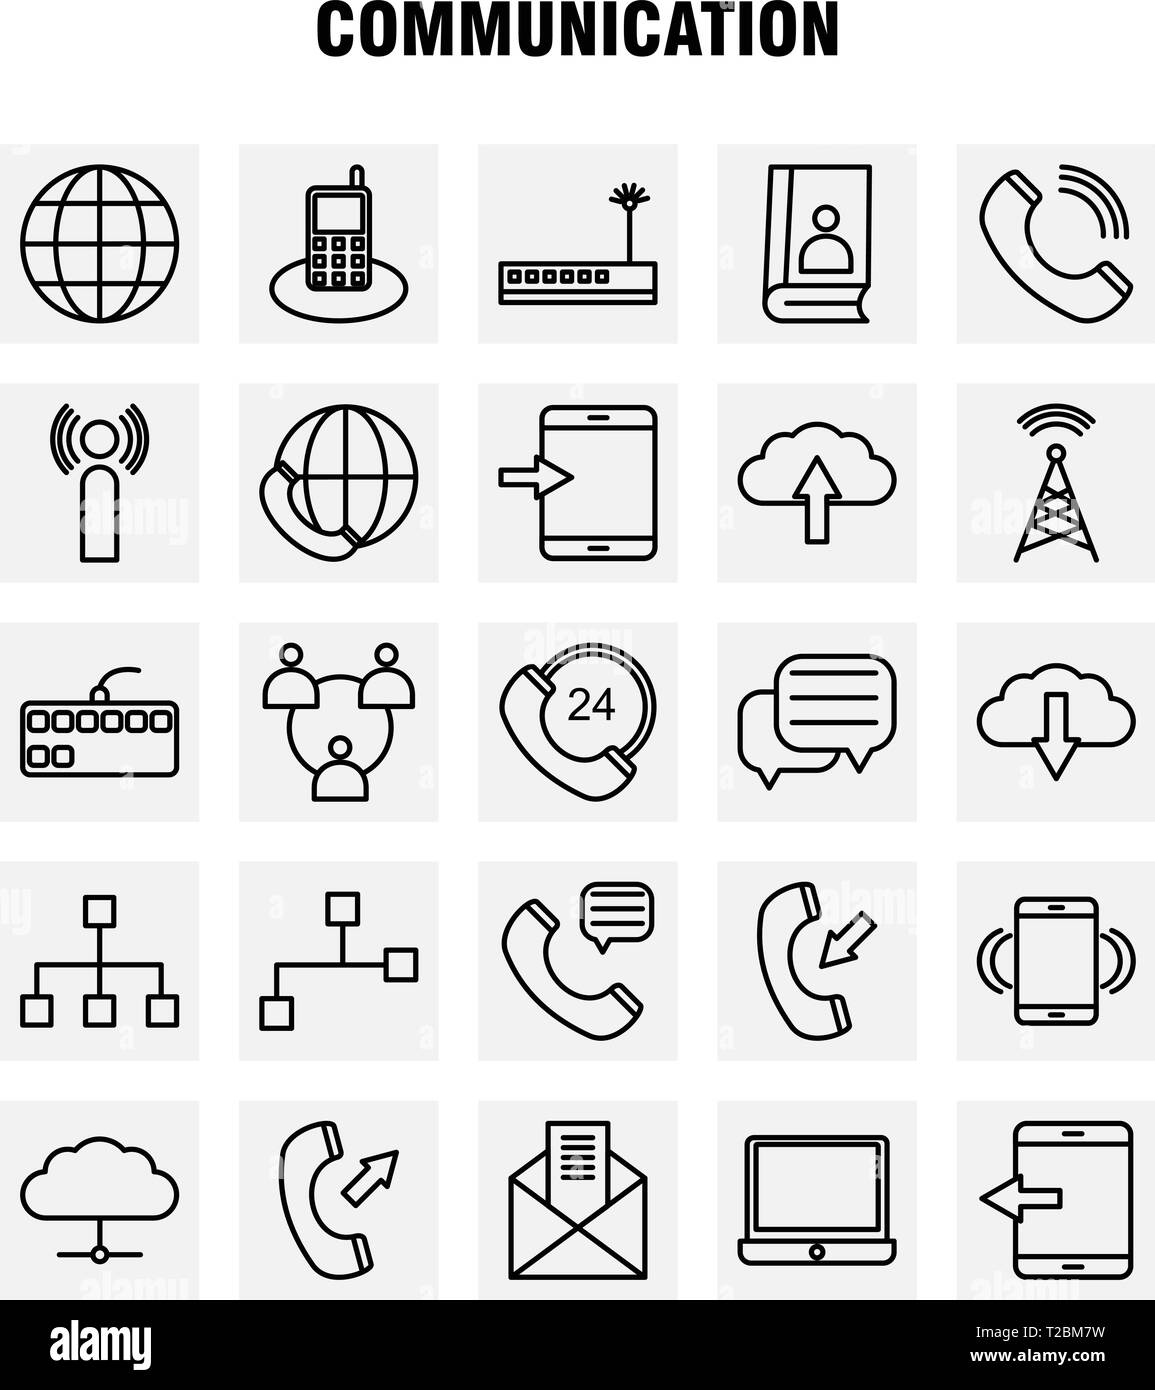 Fashion Line Icons Set For Infographics, Mobile UX/UI Kit And Print Design. Include: Date, Day, Month, Event, Crown, King, Hat, Jewel, Collection Mode - Stock Image